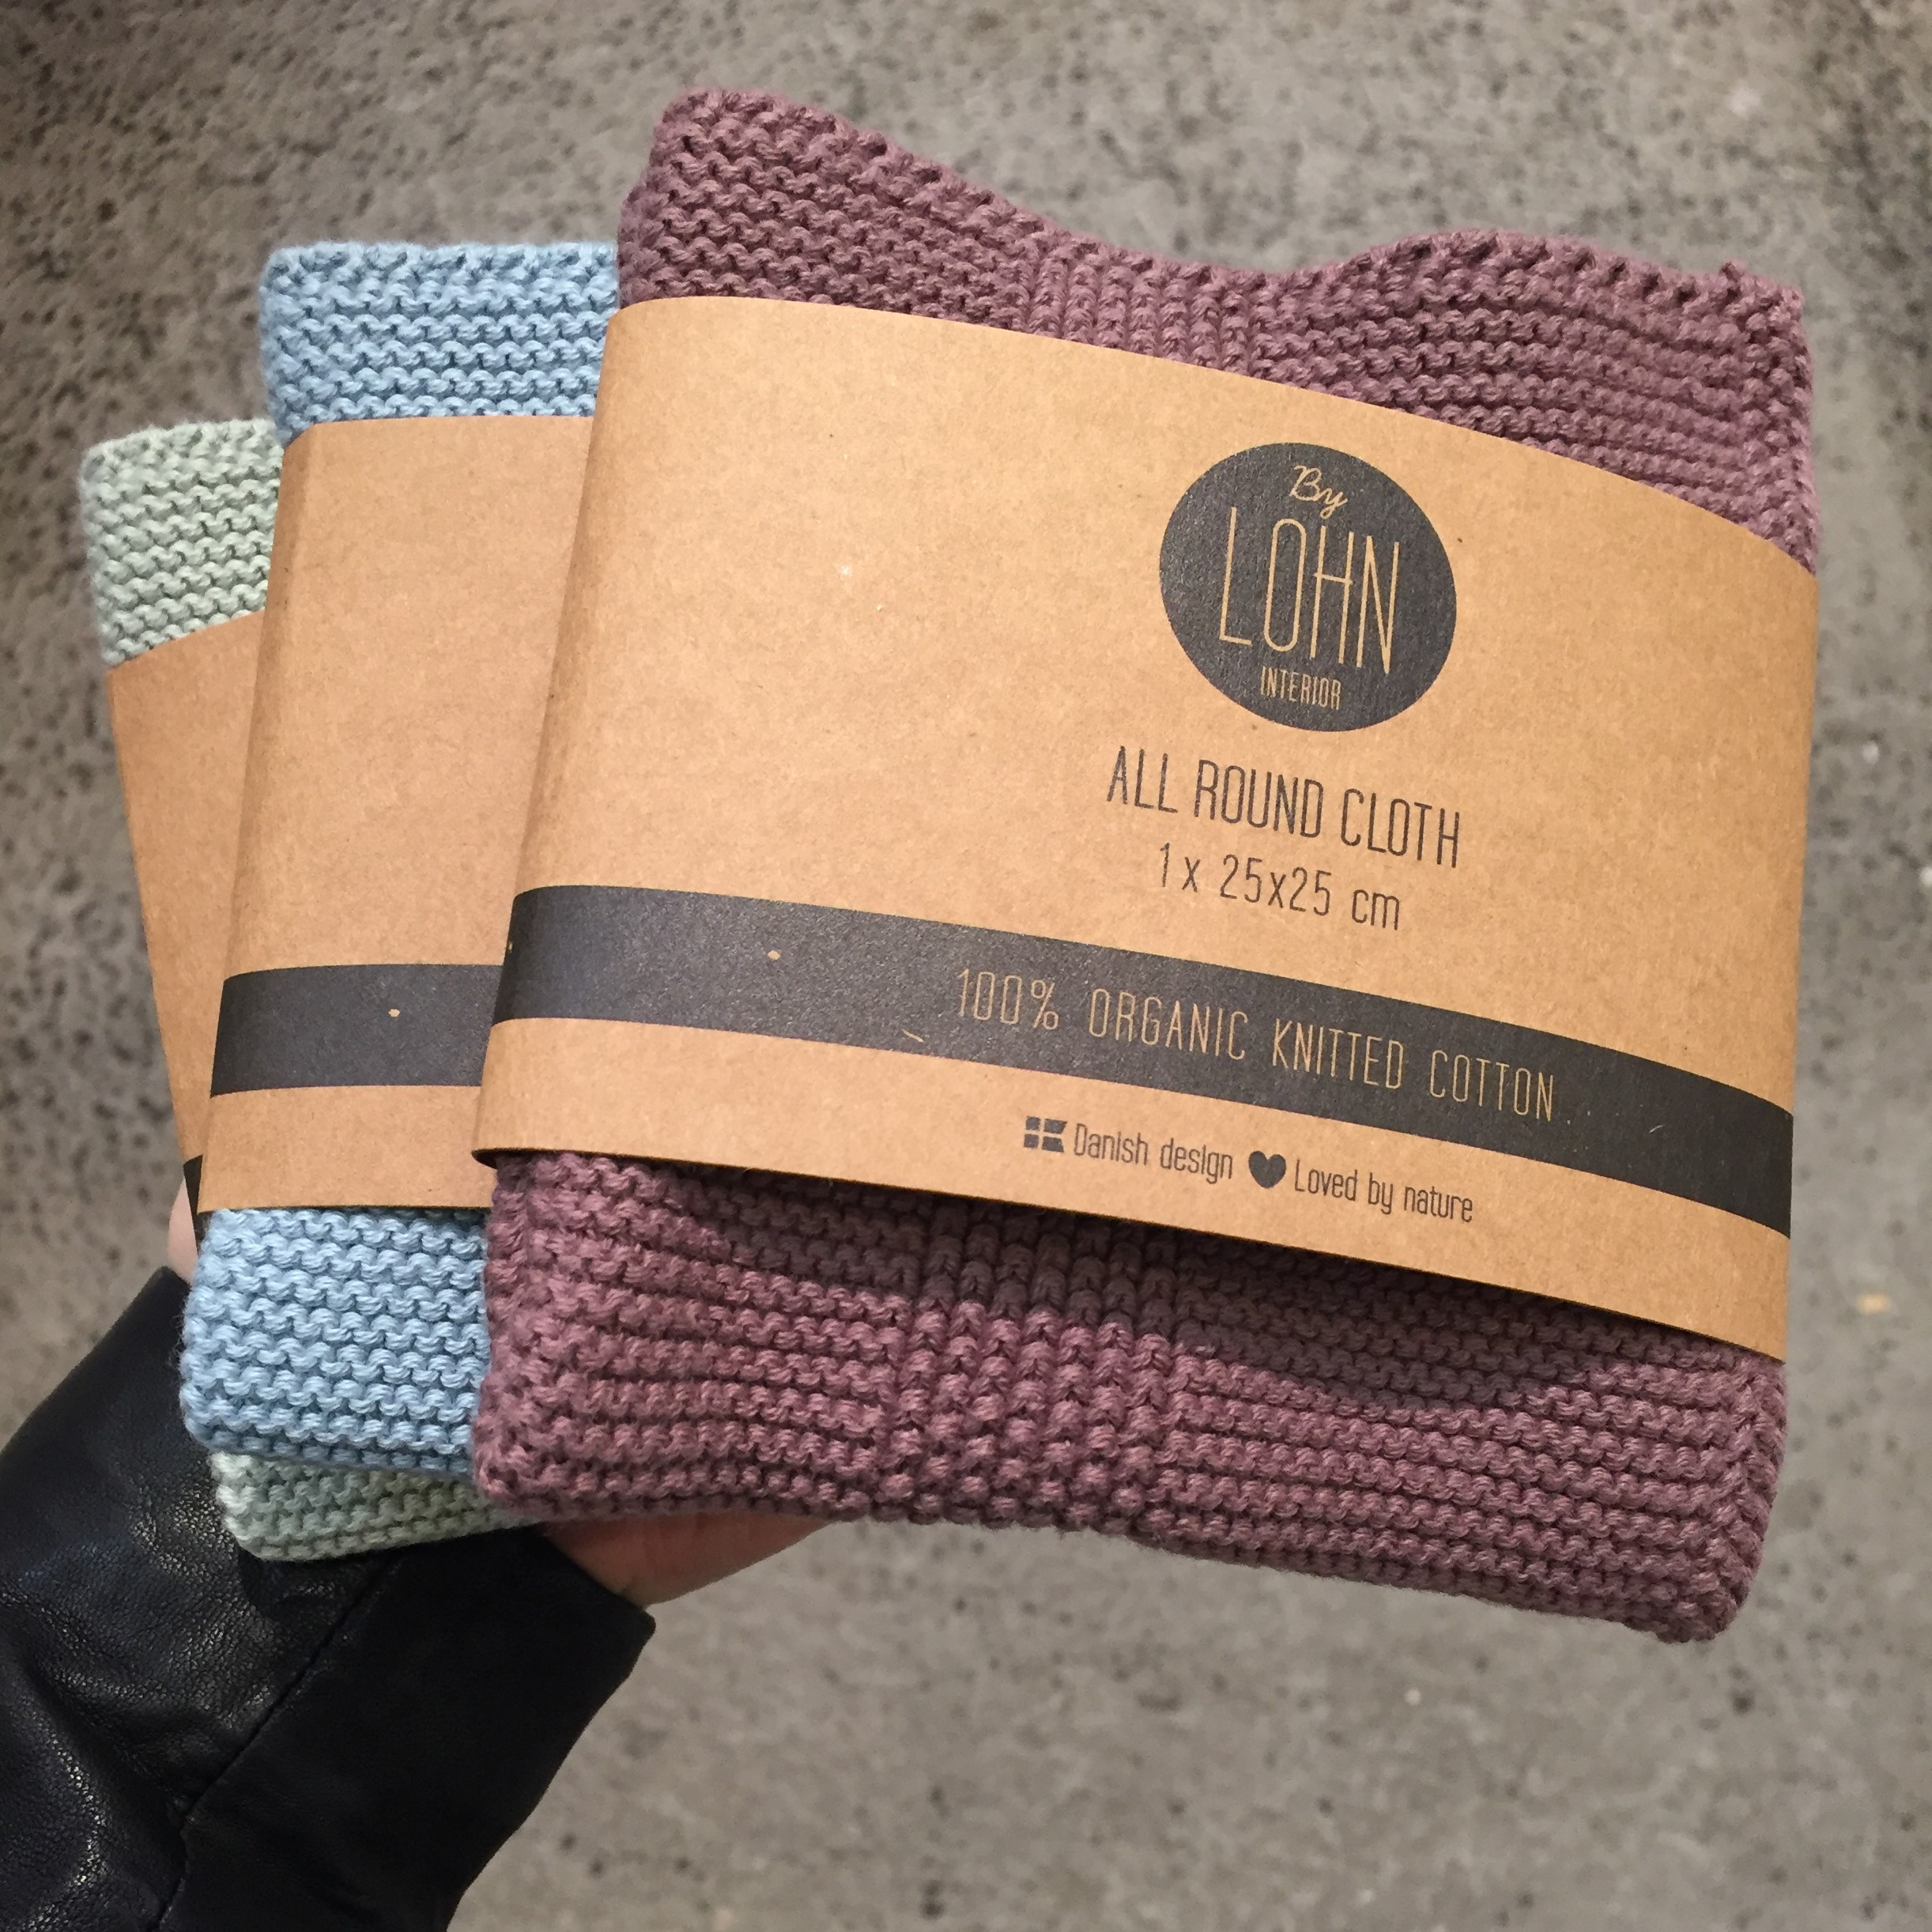 by LOHN - All round cloth 25 x 25, 1 pack